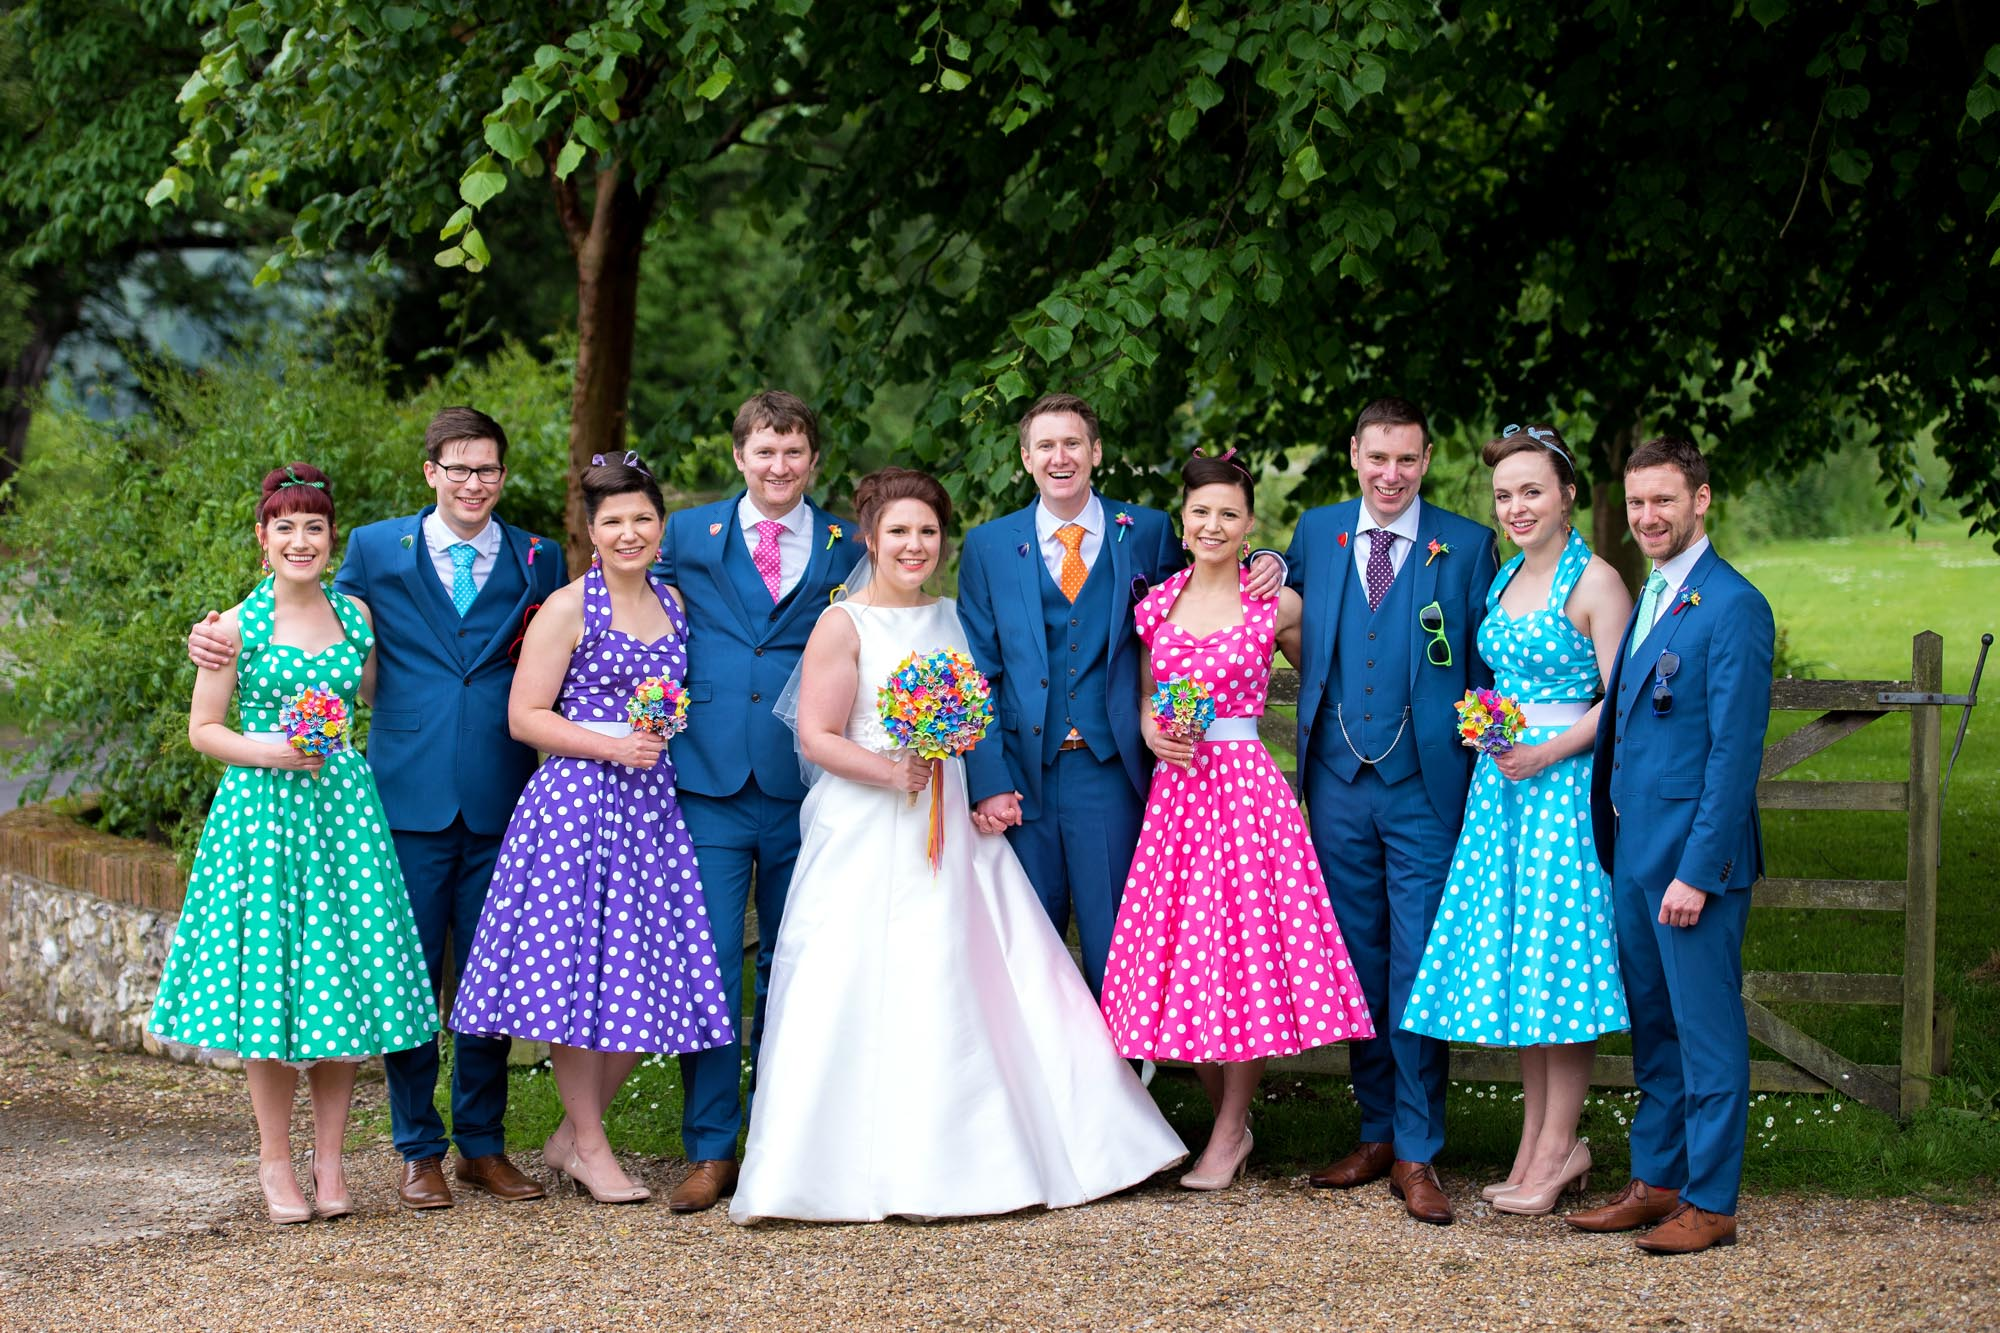 Sarah Williams Photography - Sussex Wedding Photographer